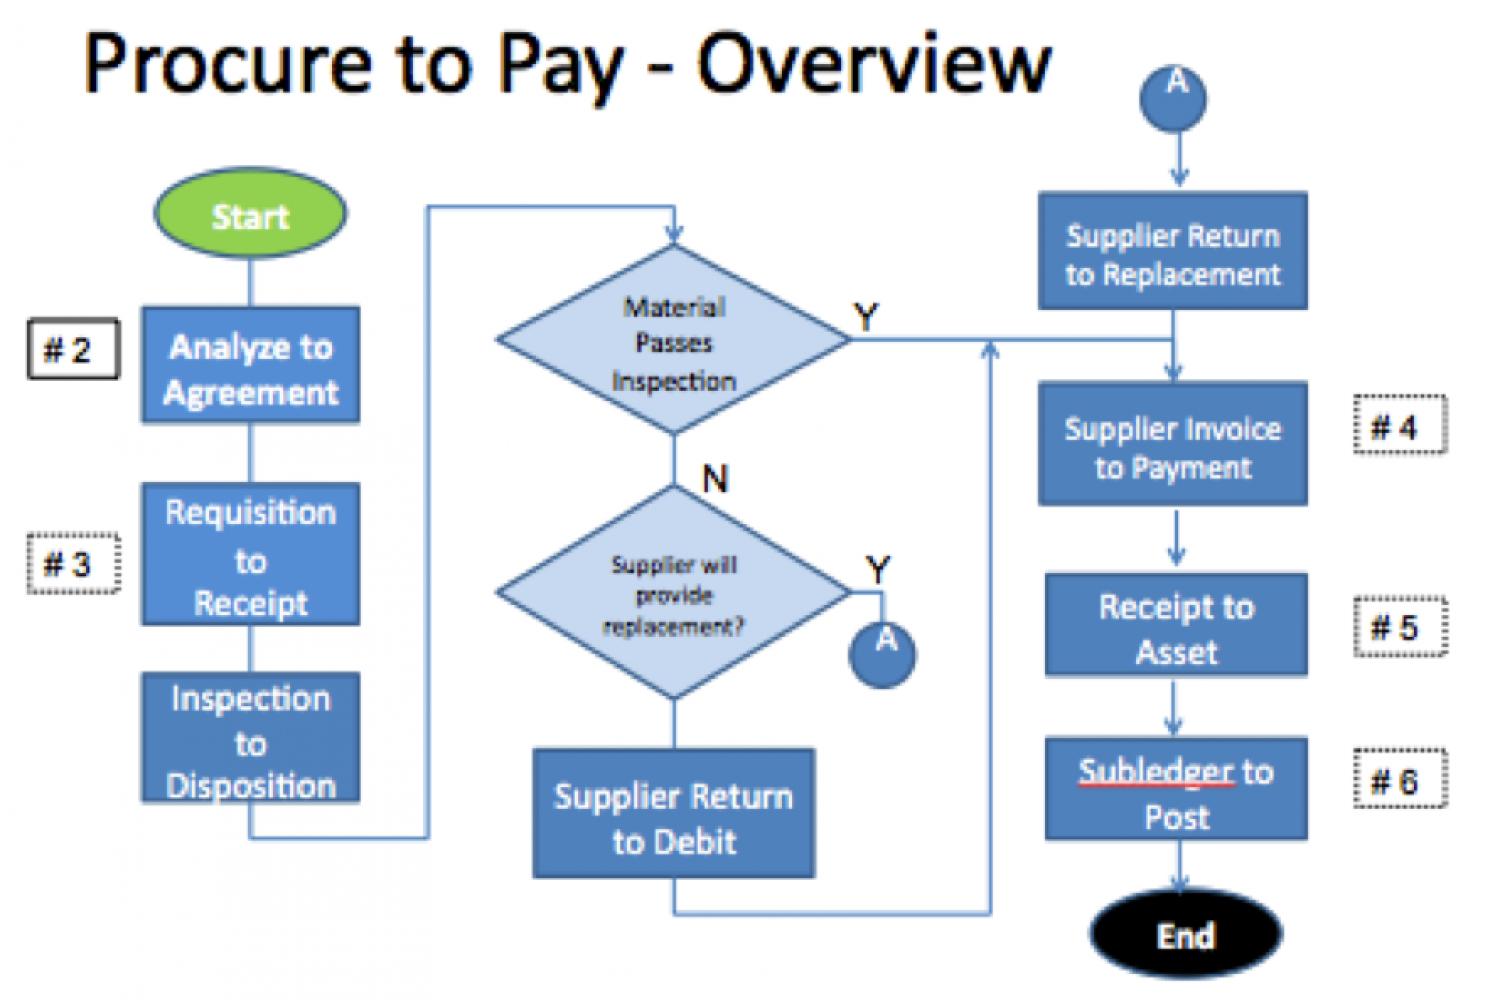 procure to pay process flow chart Oracle Procure To Pay Online Training | Oracle P2P Training | Visual.ly